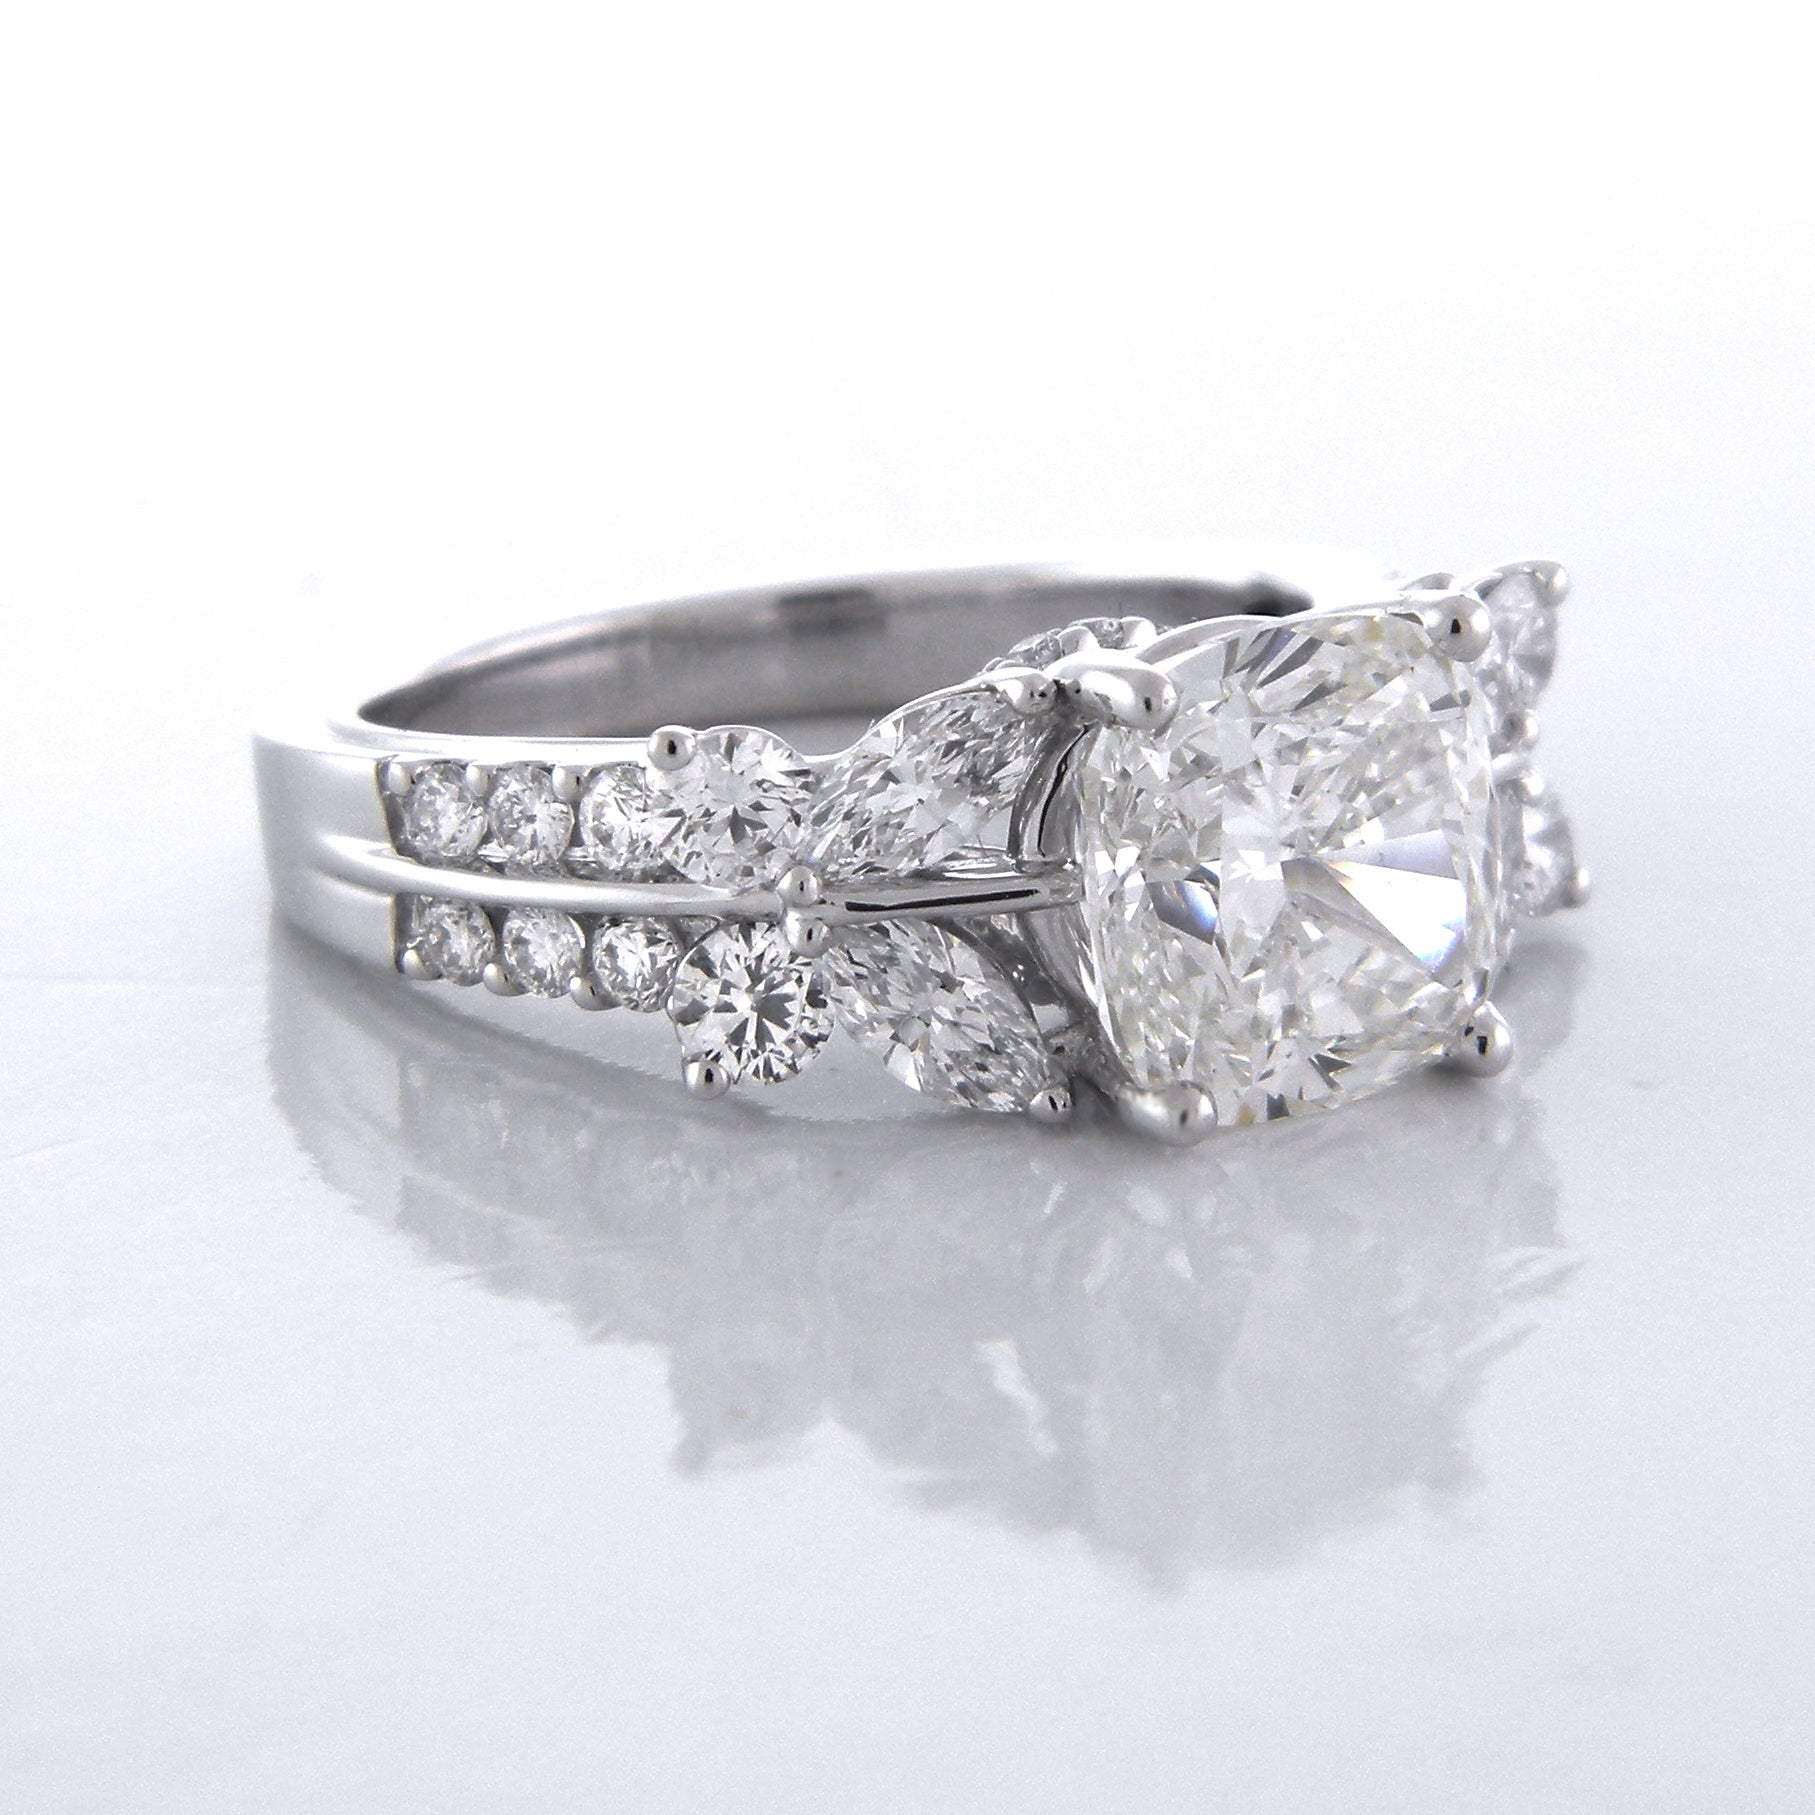 Size 8.25 Rings | Find Great Jewelry Deals Shopping at Overstock.com